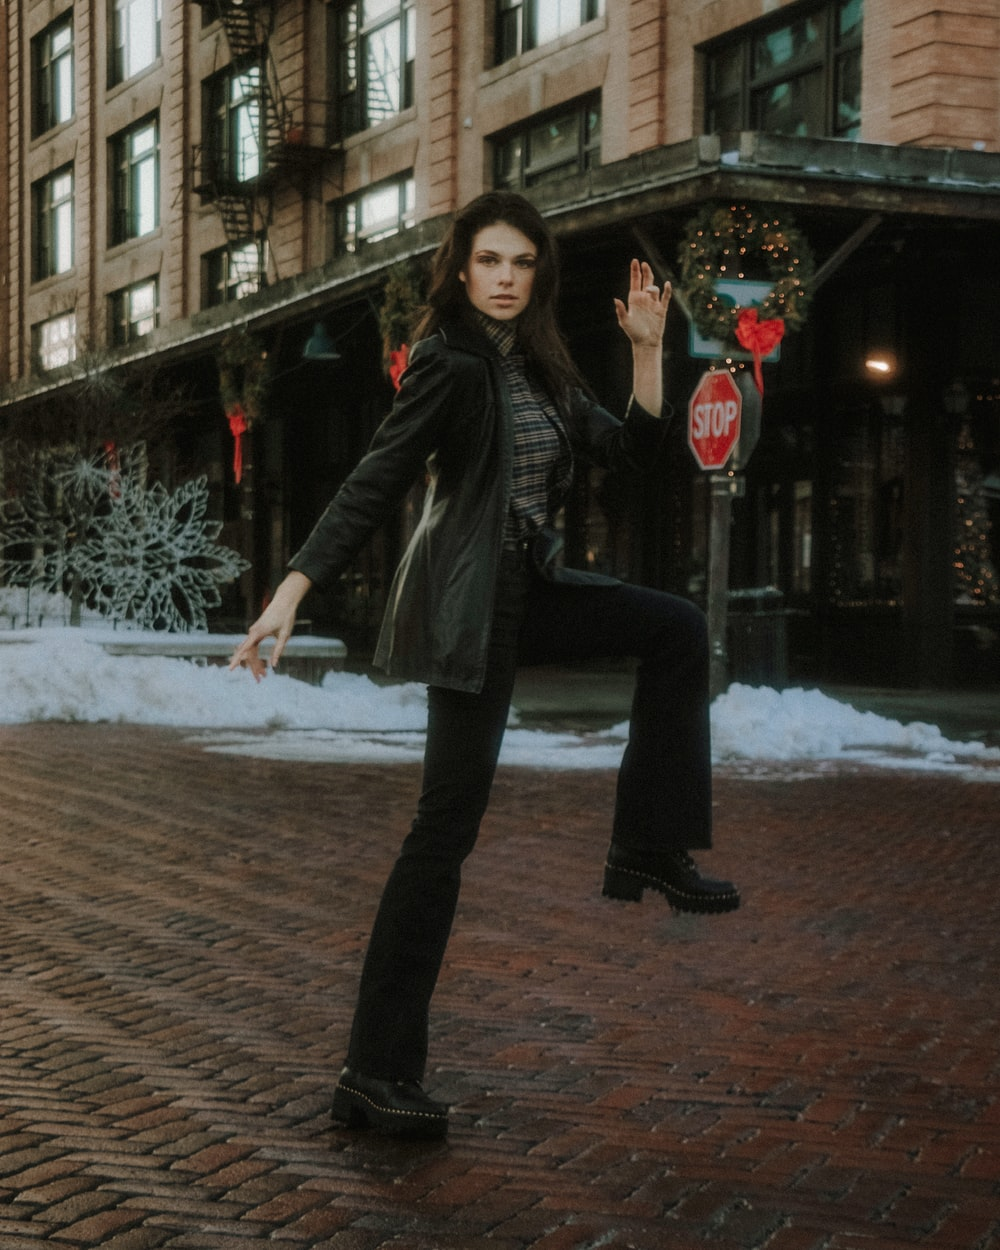 woman in black leather jacket and black pants standing on brown brick floor during daytime